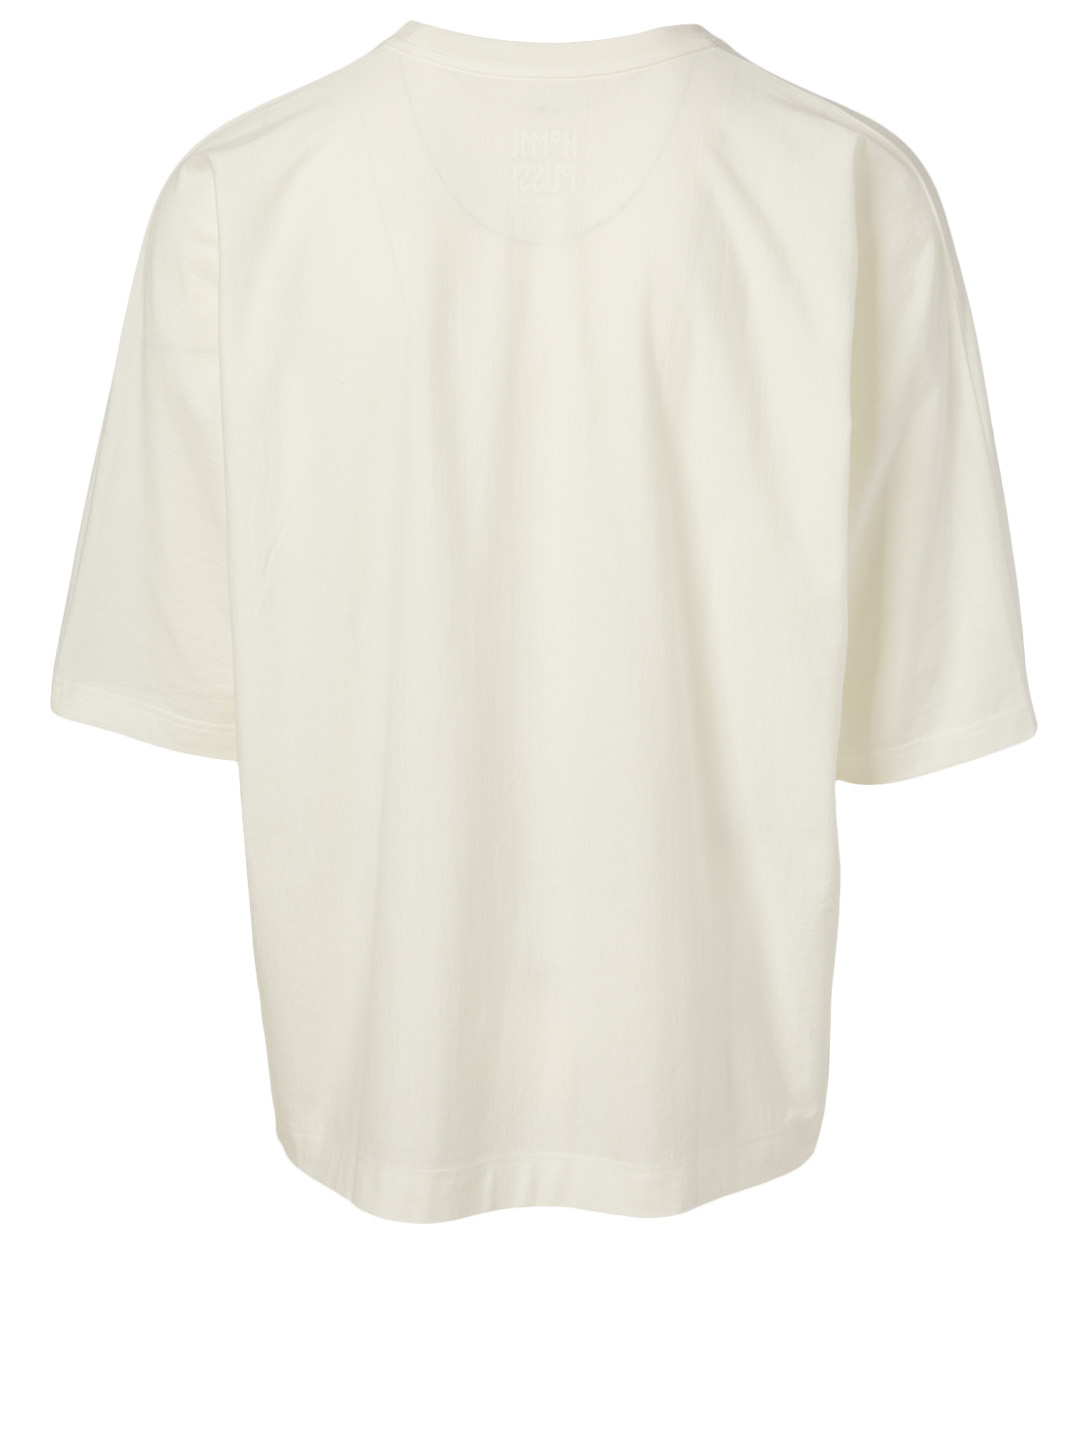 ISSEY MIYAKE Release-T Cotton T-Shirt Men's White